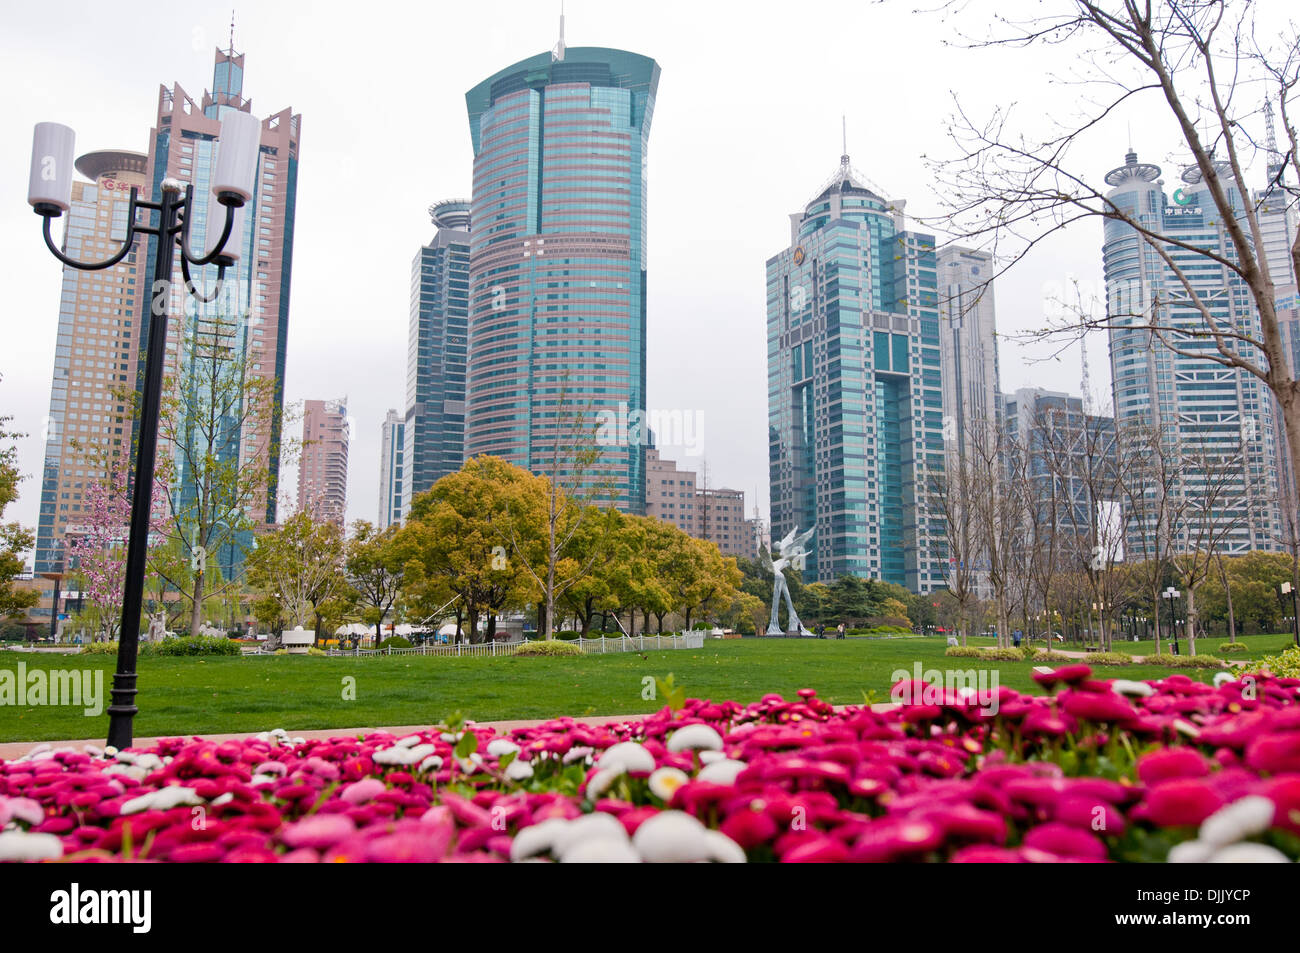 View from Luijazui Central Green Space (Luijazui Park) in Pudong, Shanghai, China (SEE DESCRIPTION FOR BUILDINGS DETAILS) - Stock Image